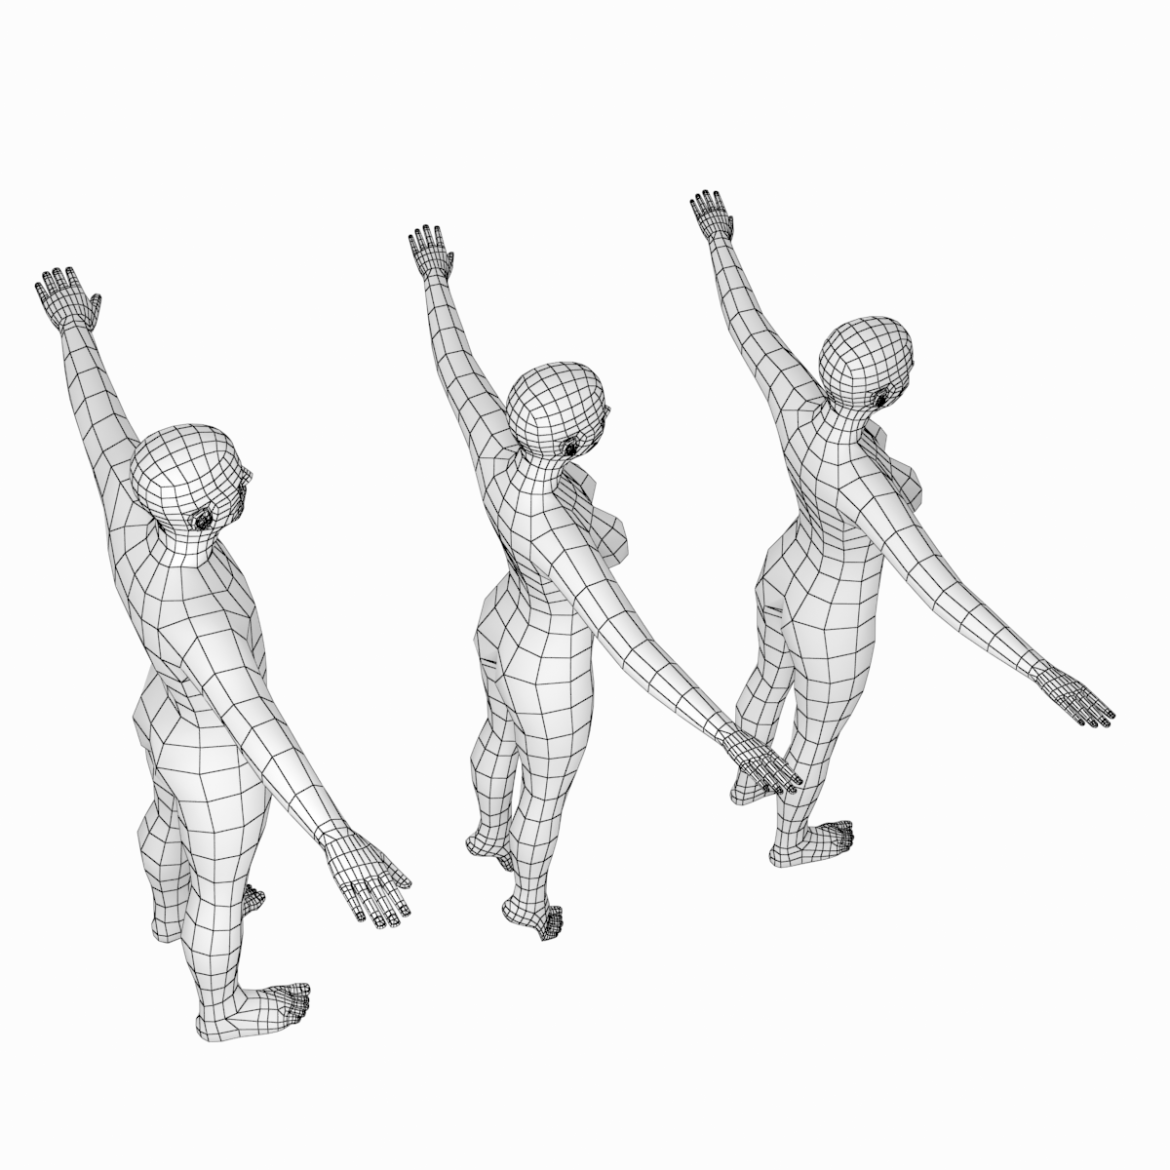 male and female base mesh in t-pose 3d model png stl obj ma mb max fbx dxf dwg dae c4d 3ds txt 305174